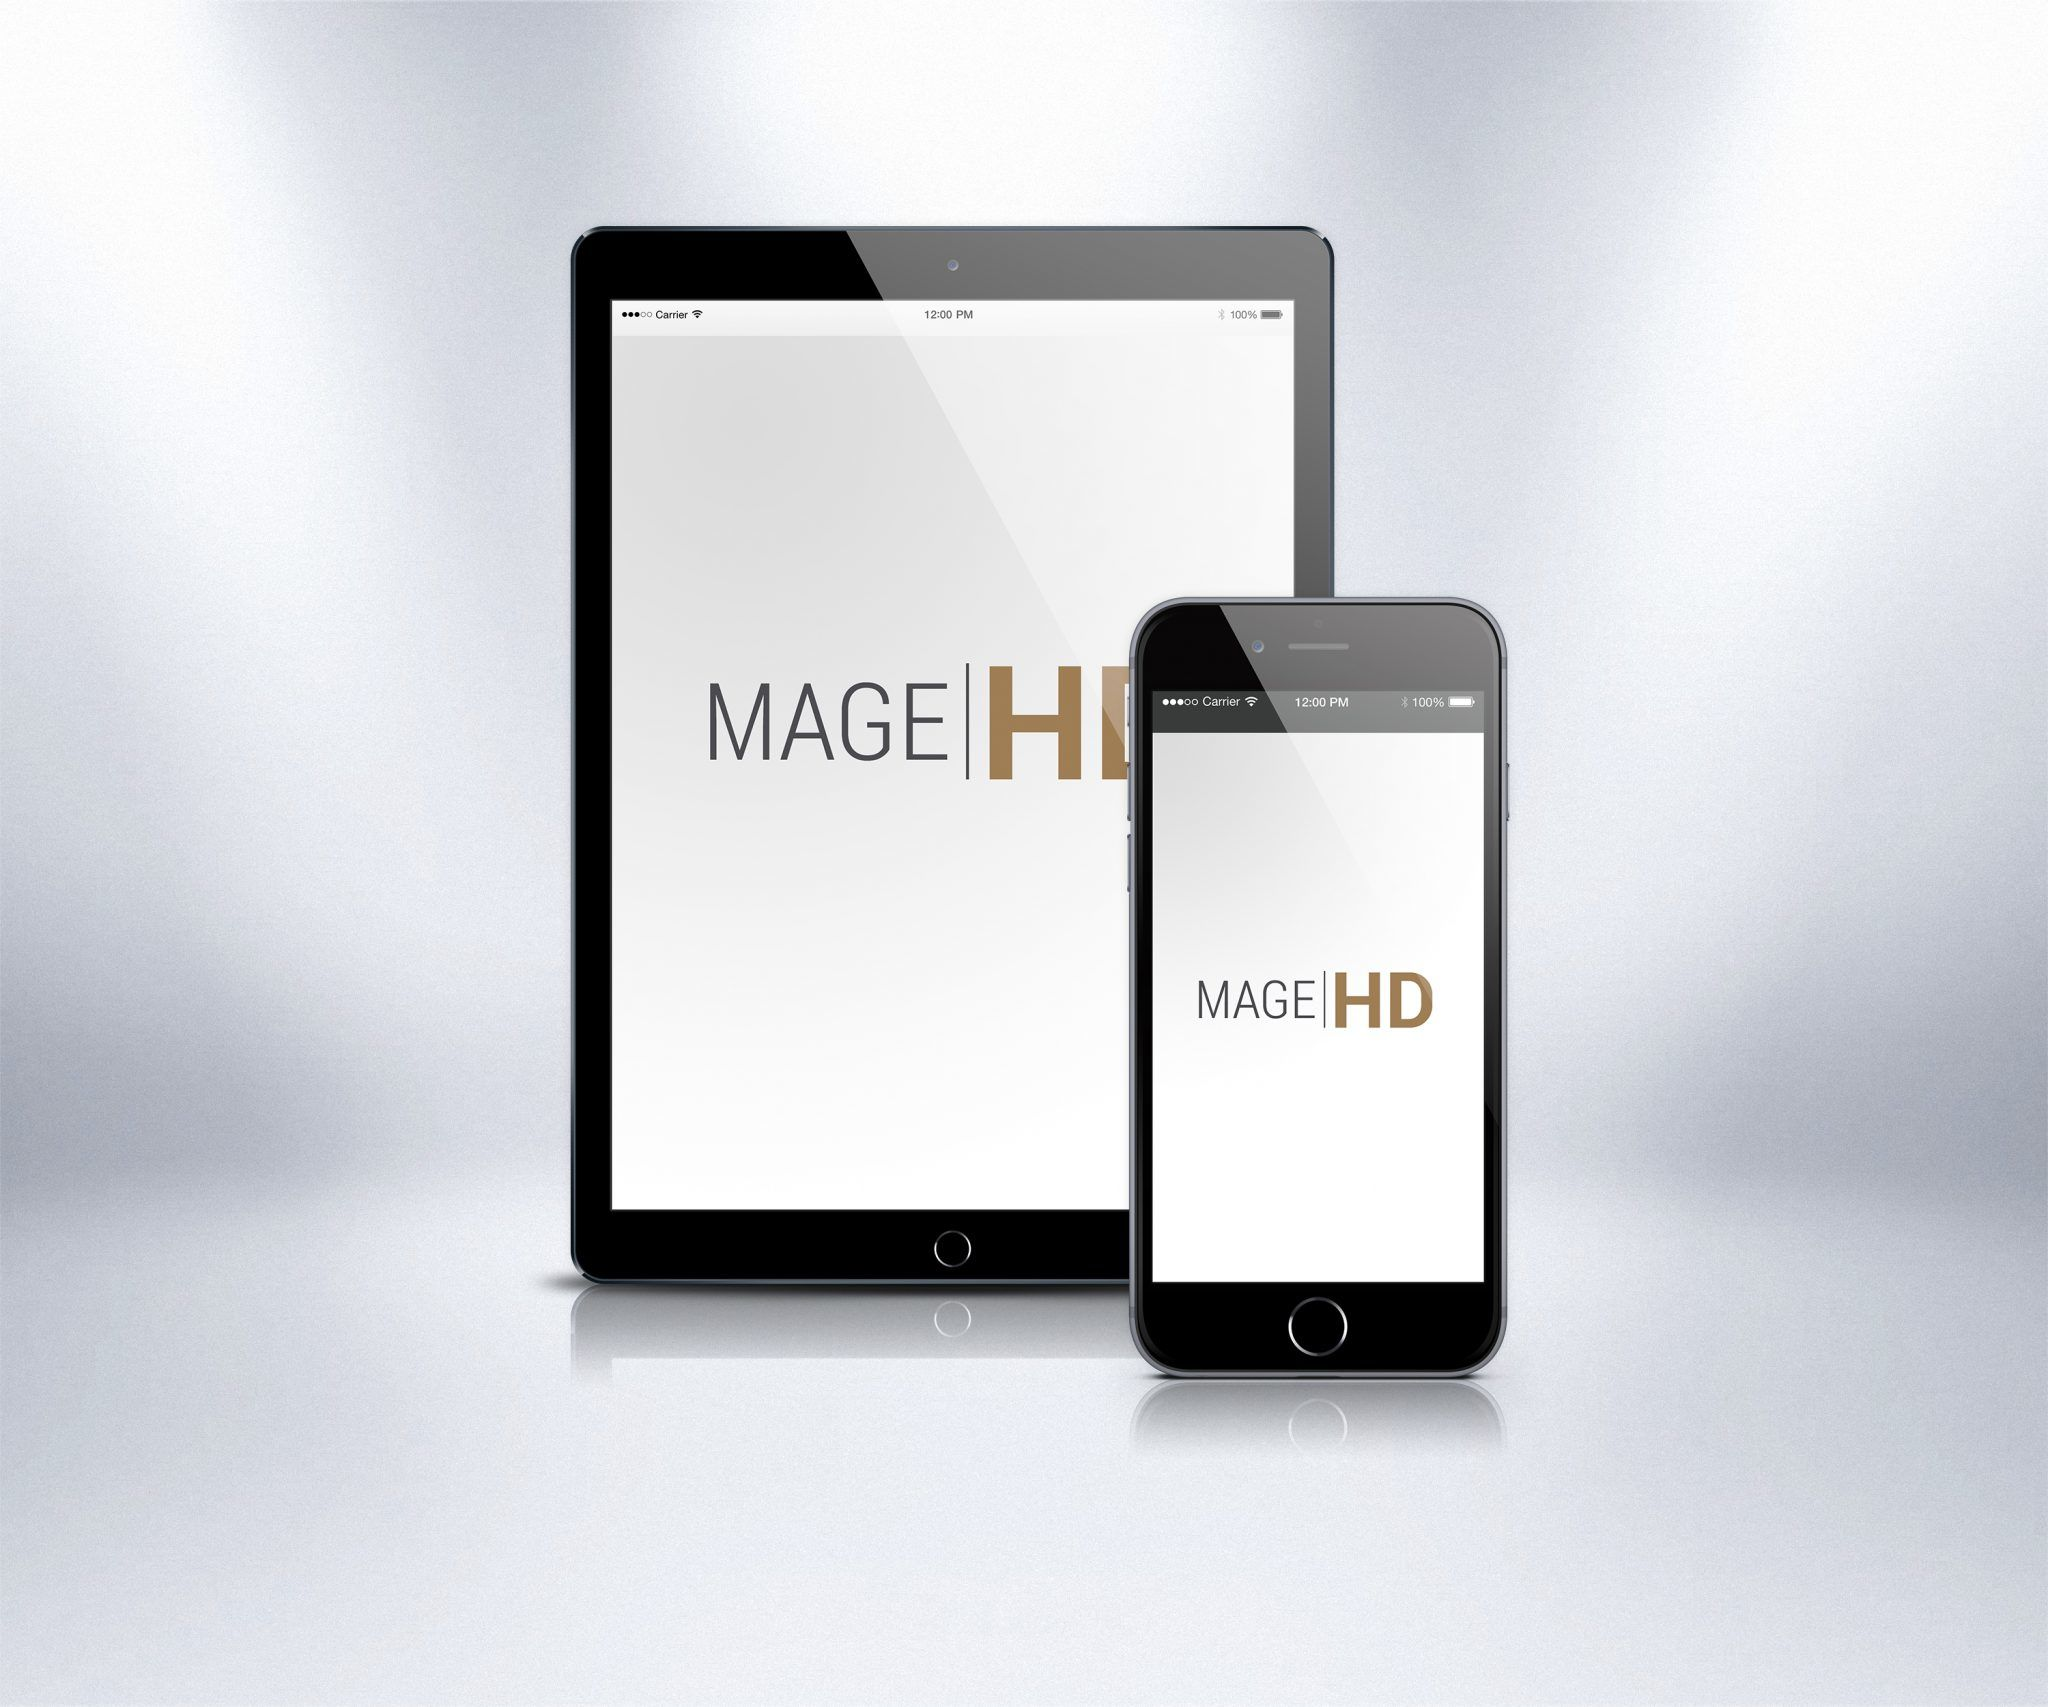 MageHD mobile application development